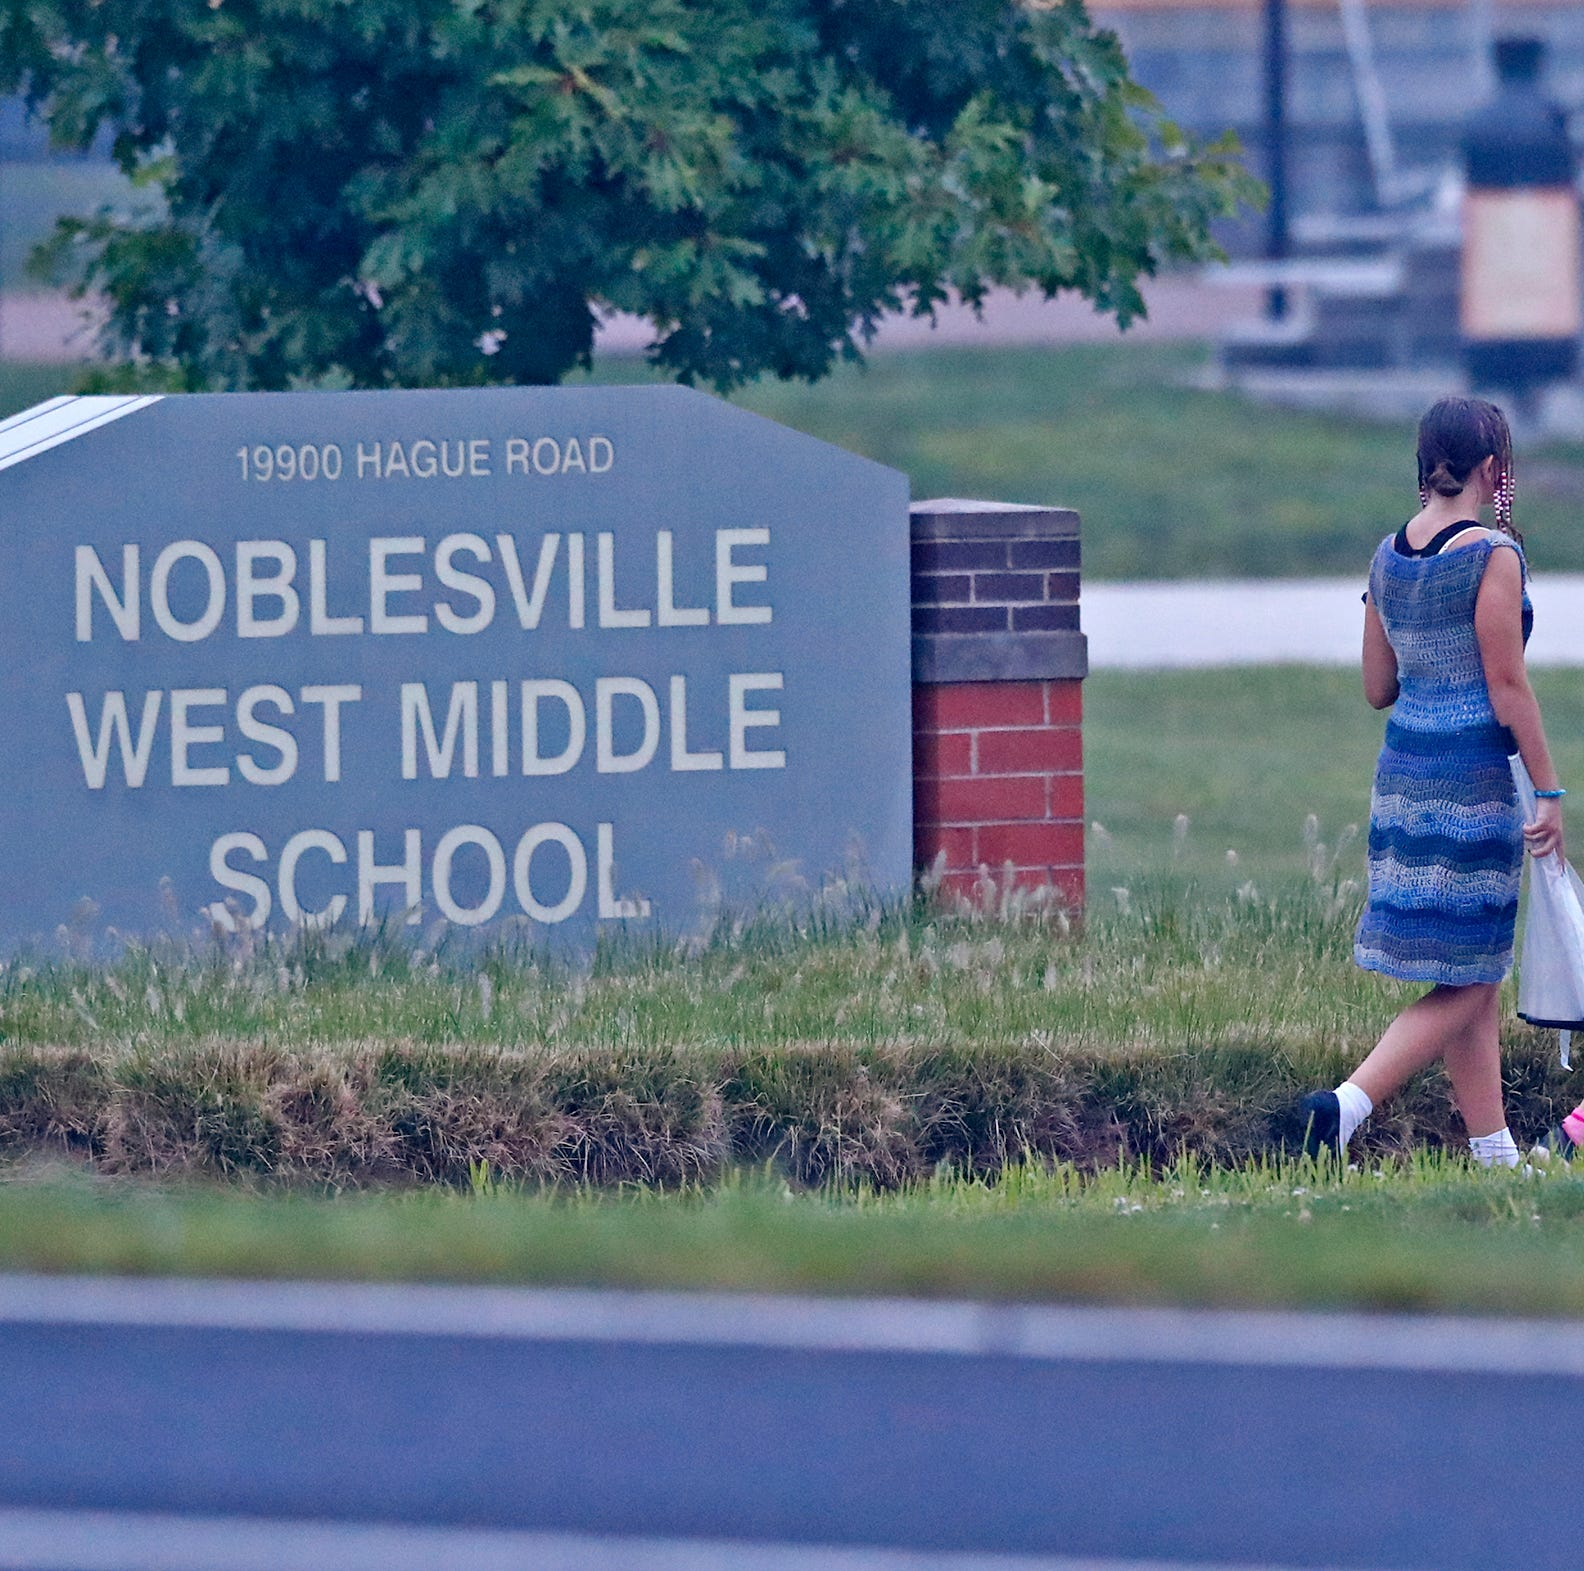 Judge grants request to move Noblesville shooting lawsuit from Hamilton to Marion County